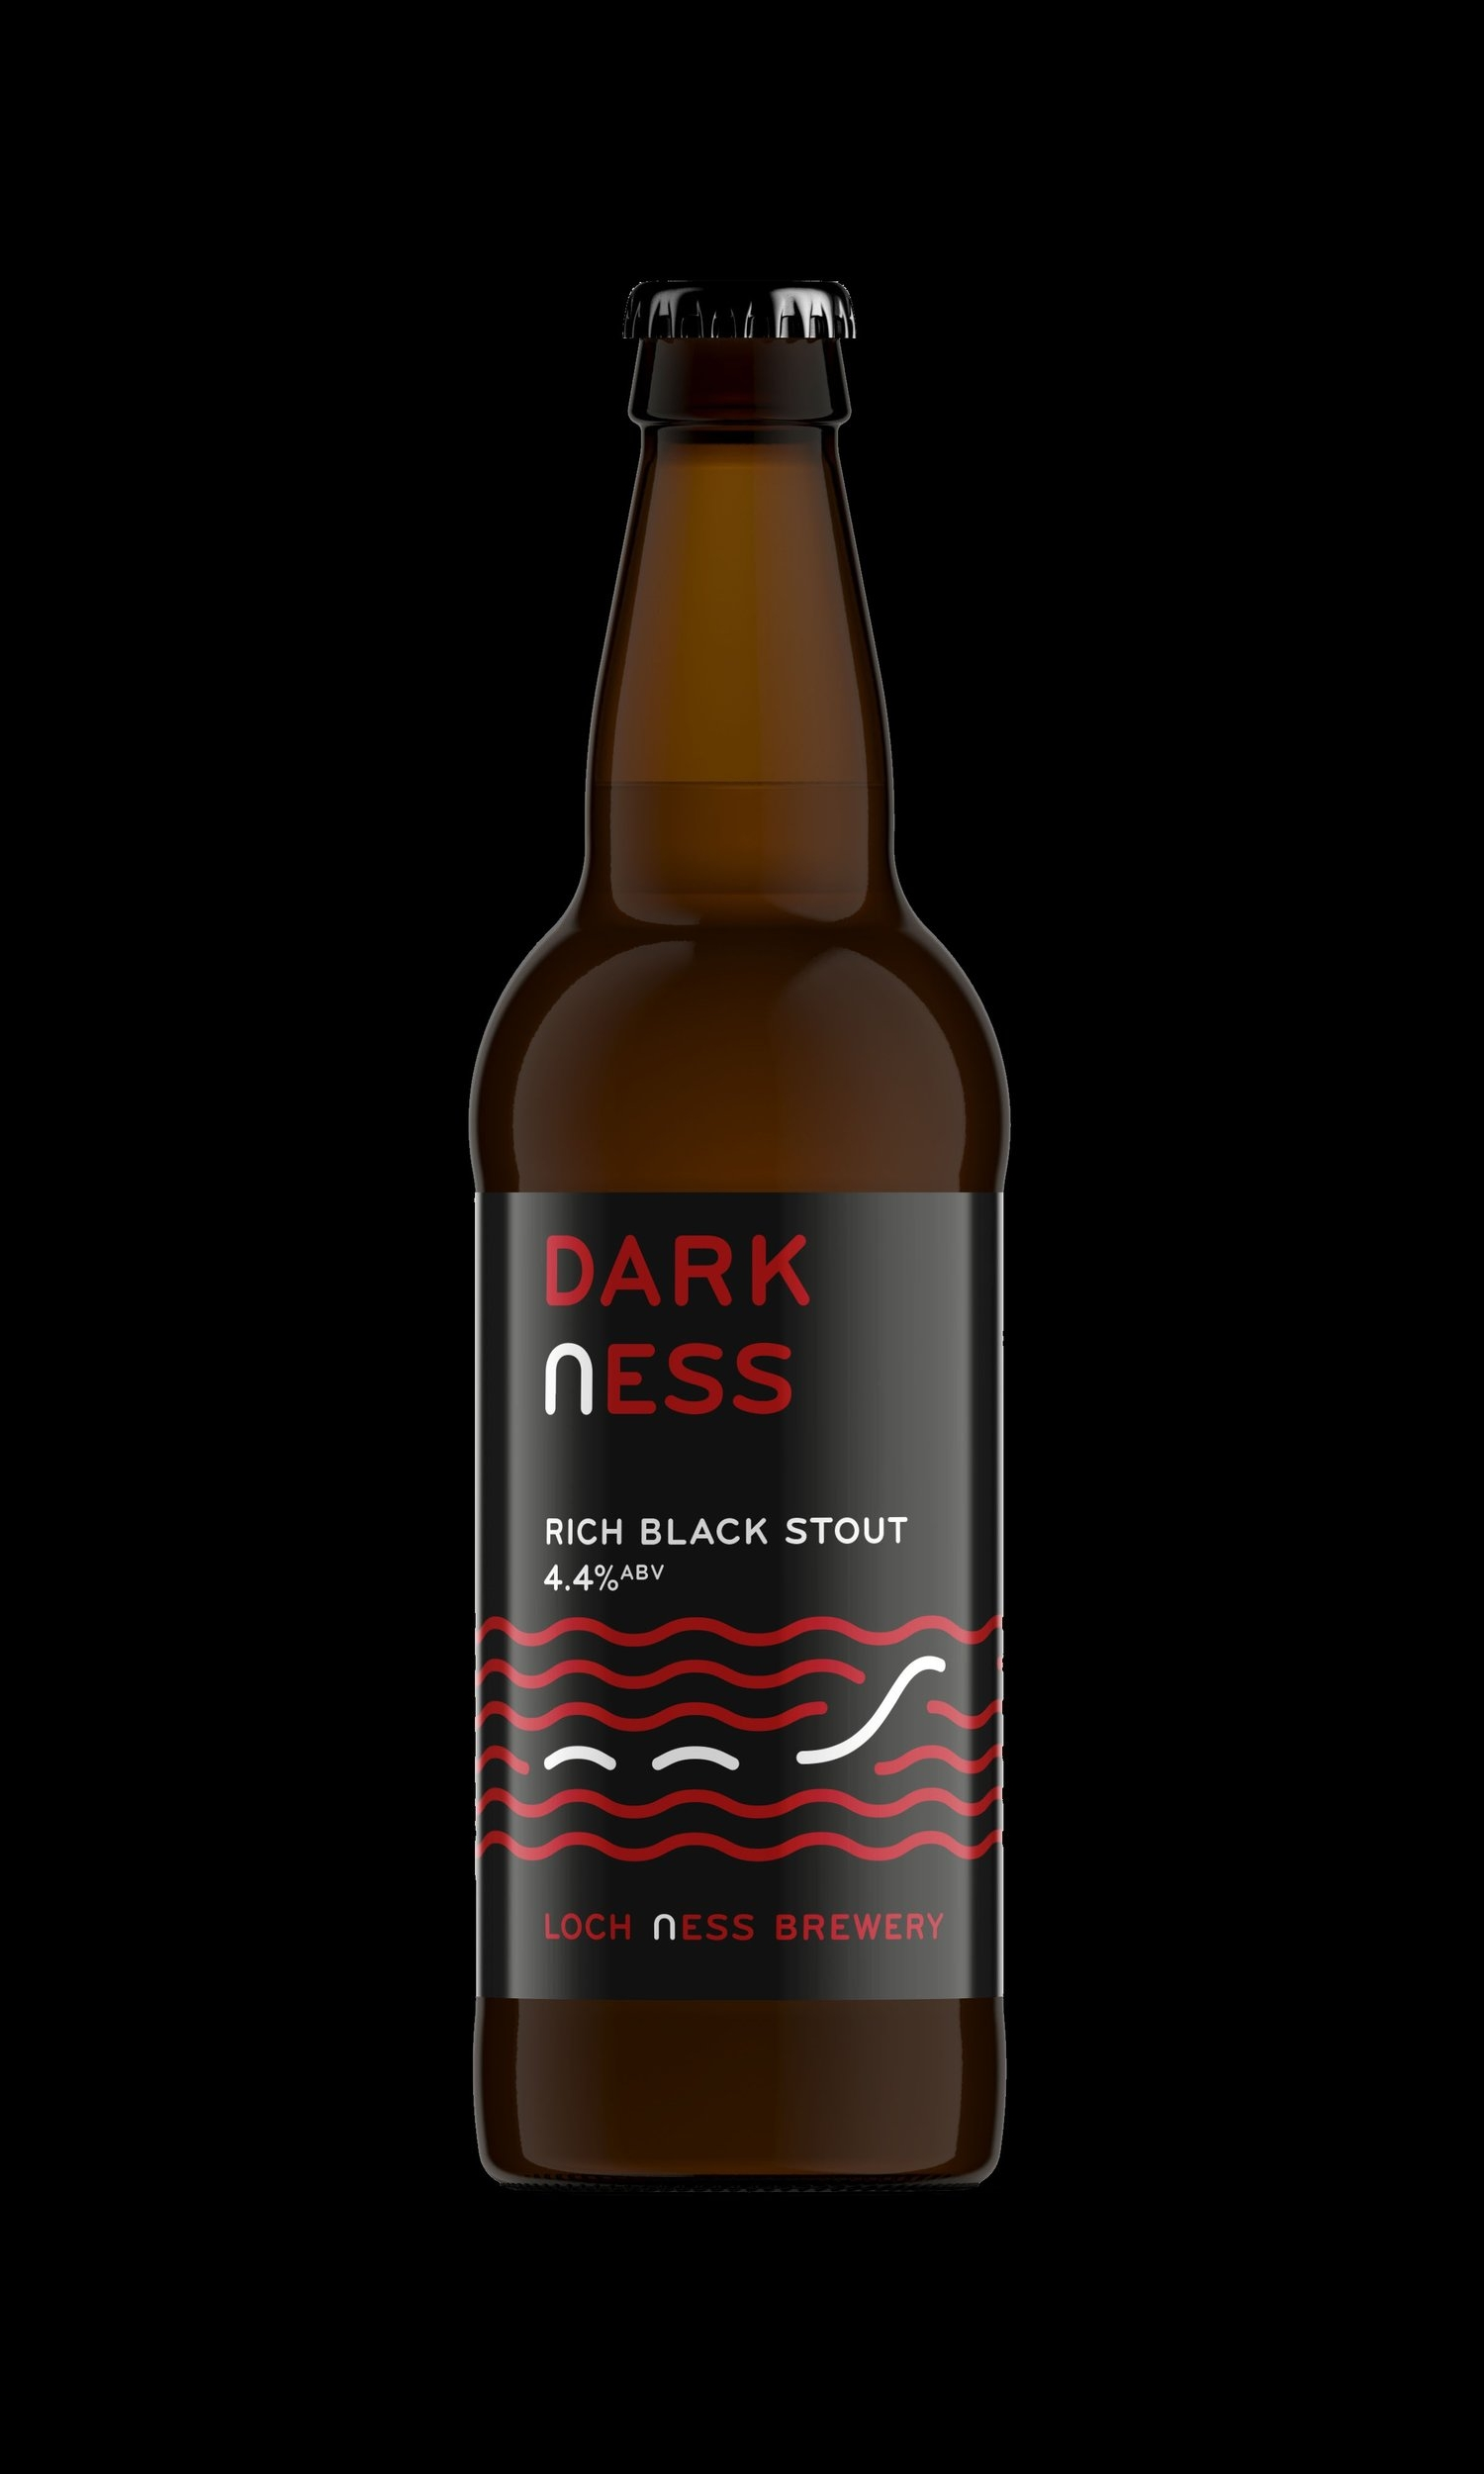 Loch Ness Brewery_DarkNess_500ml Bottle_DARK_BGRD.jpg